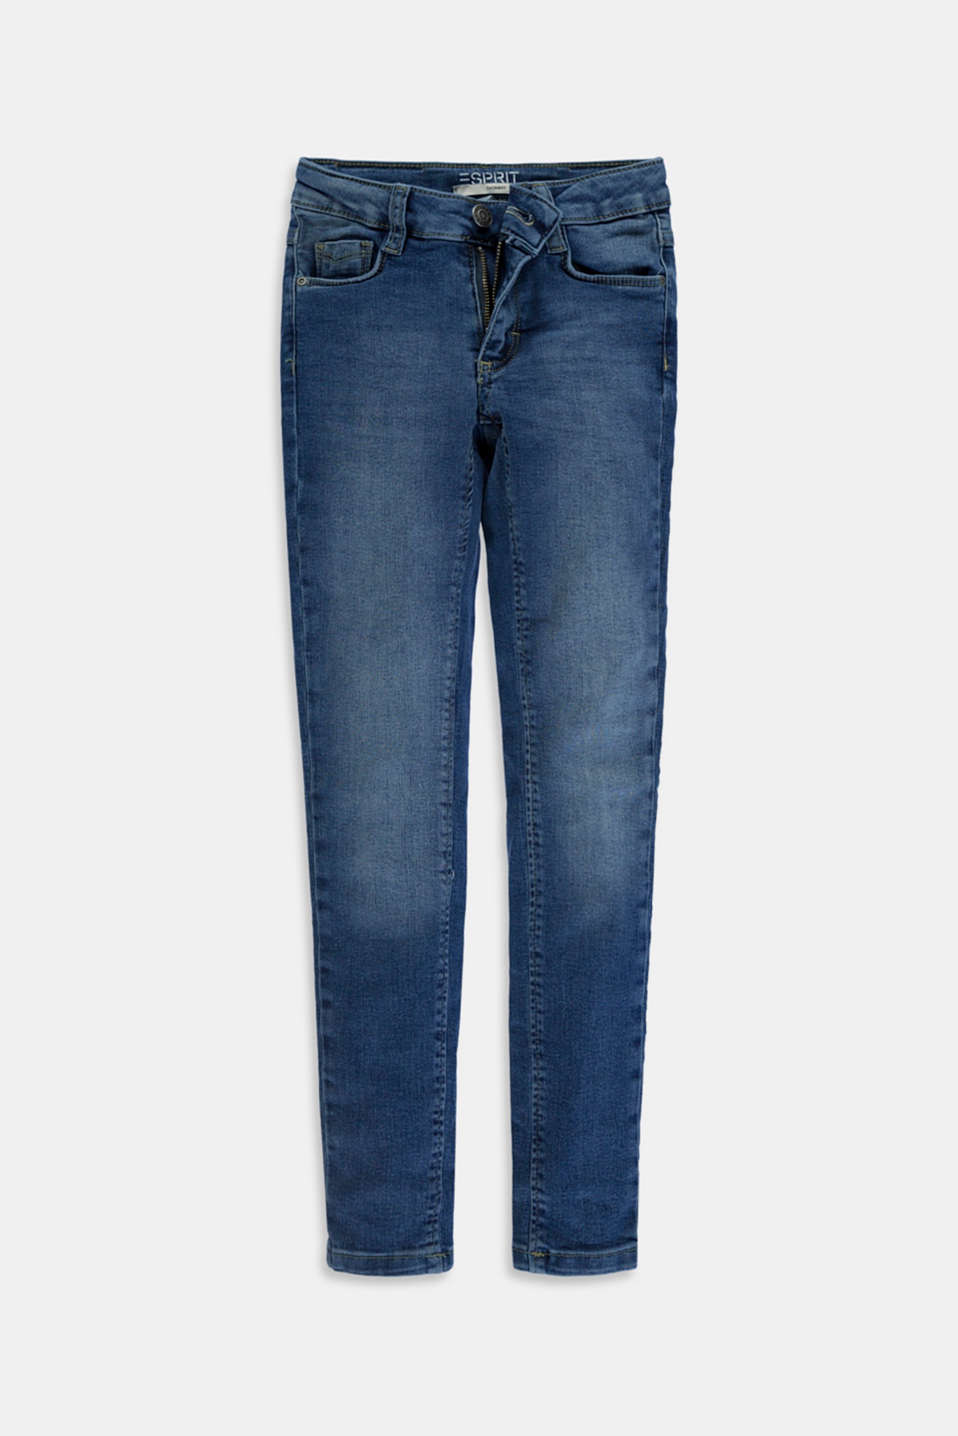 Esprit - Jeans stretch con differenti fit e cintura regolabile